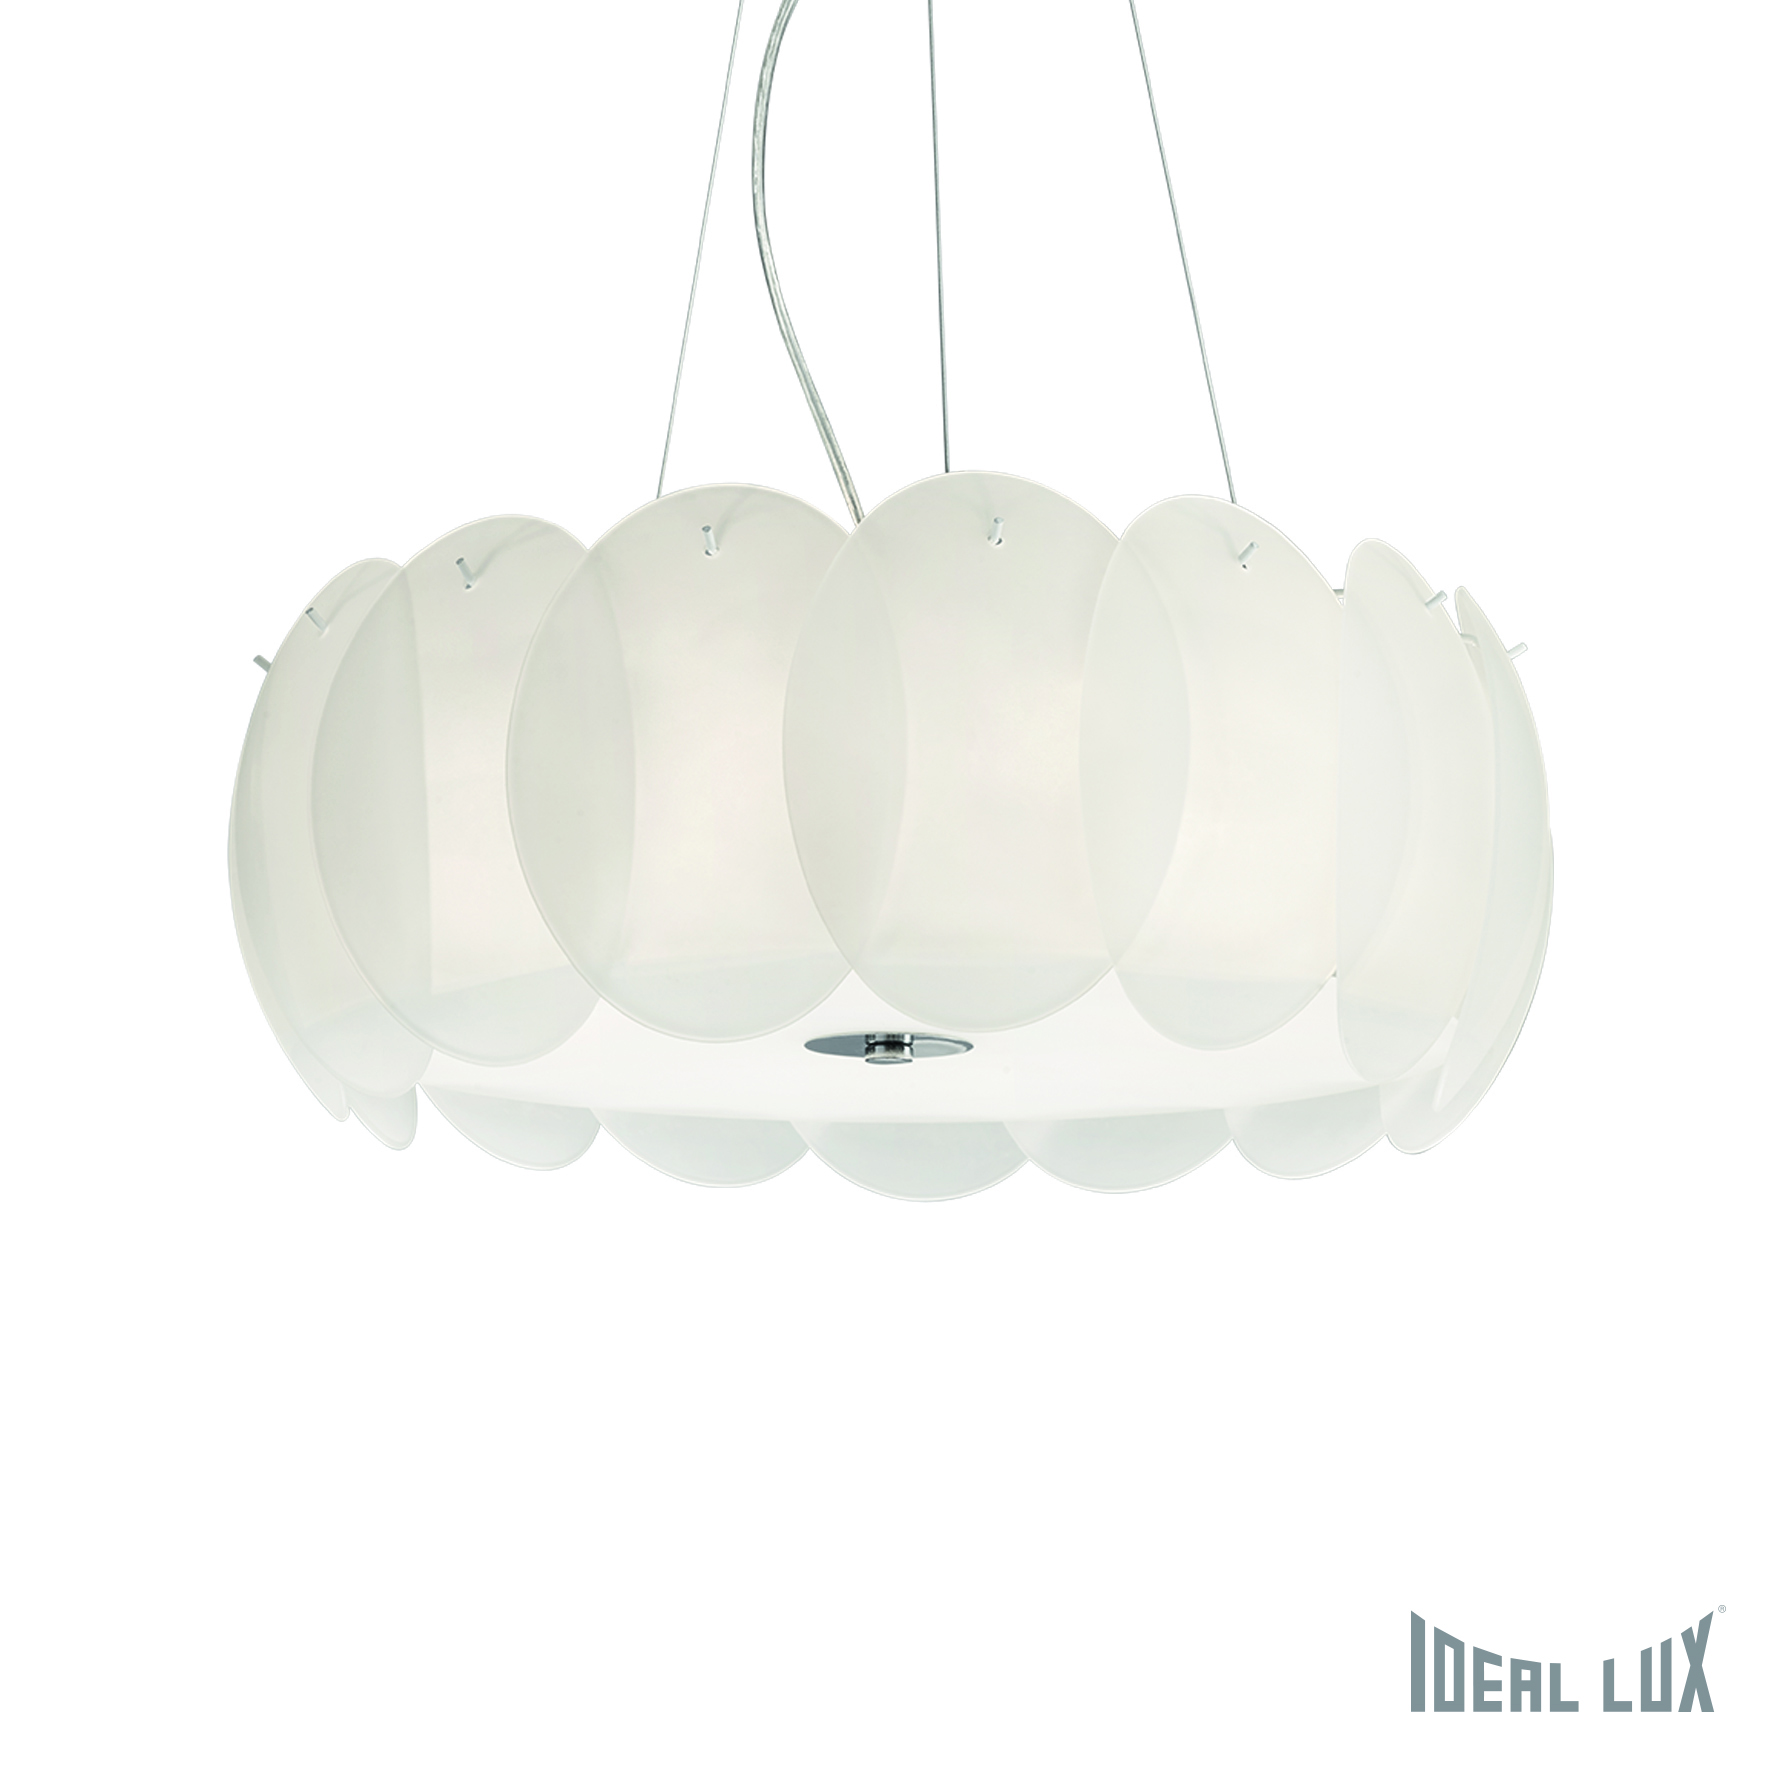 Светильник подвесной Ideal Lux Ovalino OVALINO SP8 BIANCO ideal lux подвесной светильник ideal lux leaves sp8 bianco